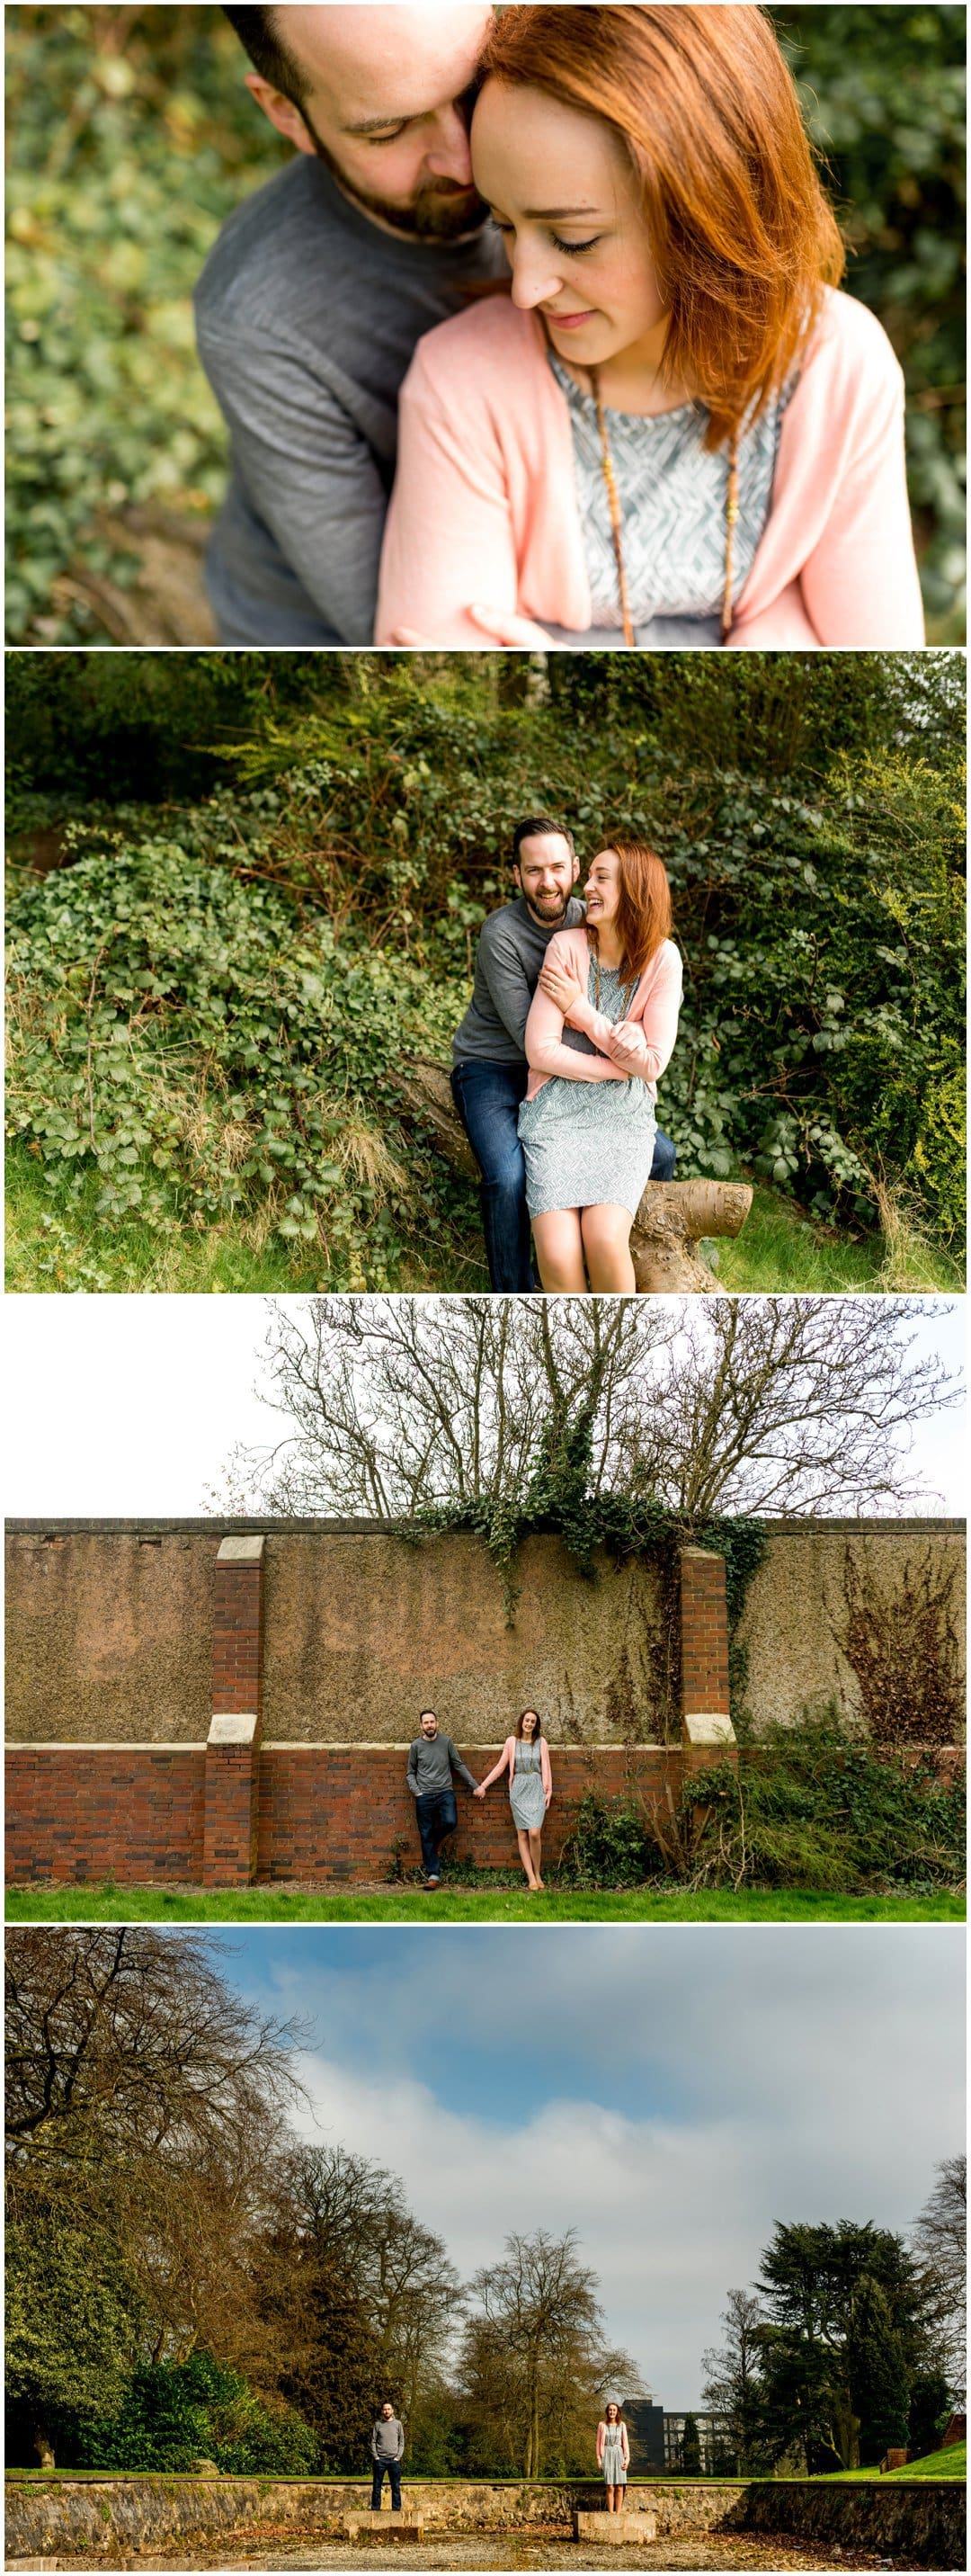 Helen and Dan's natural, fun engagement session in Bourneville, Birmingham by Lisa Carpenter Photography, West Midlands and Birmingham Wedding Photographer